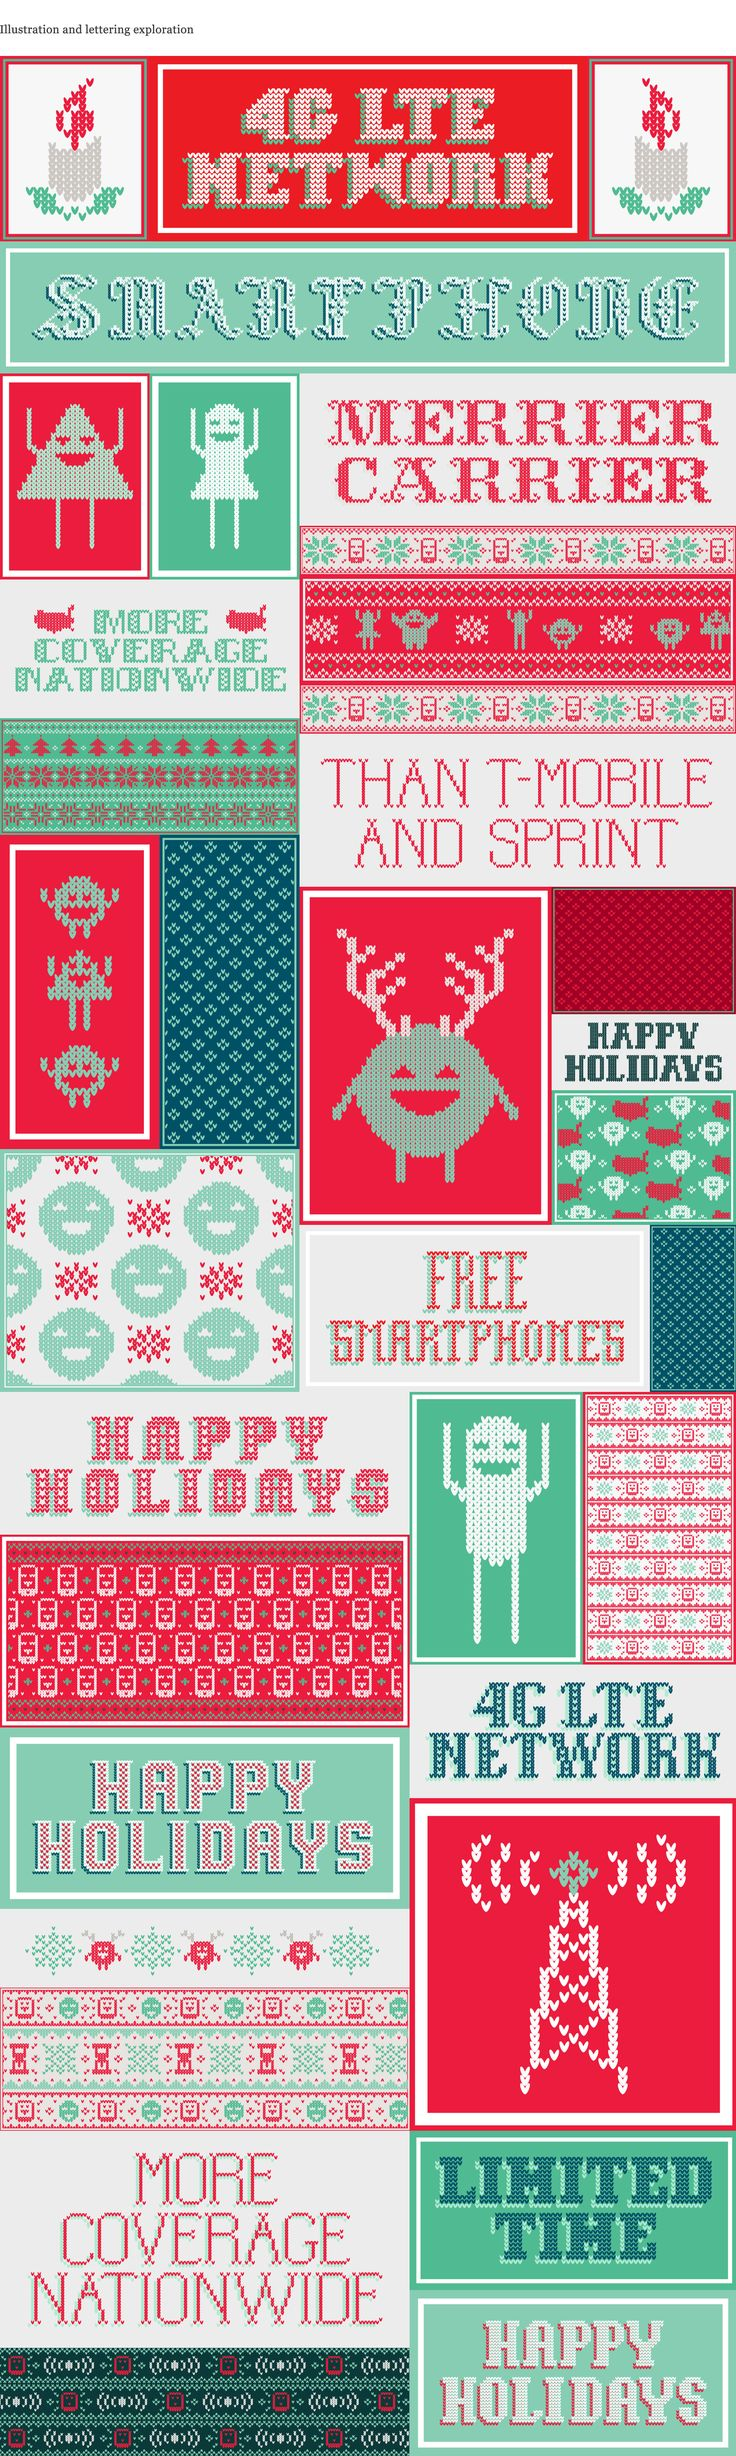 I worked with Psyop in the creation of this christmas ad for Cricket Wireless designing the illustrations, patterns and lettering pieces for the sweaters. They are all christmas inspired with a twist, giving it a look more in tune with the product advertised.